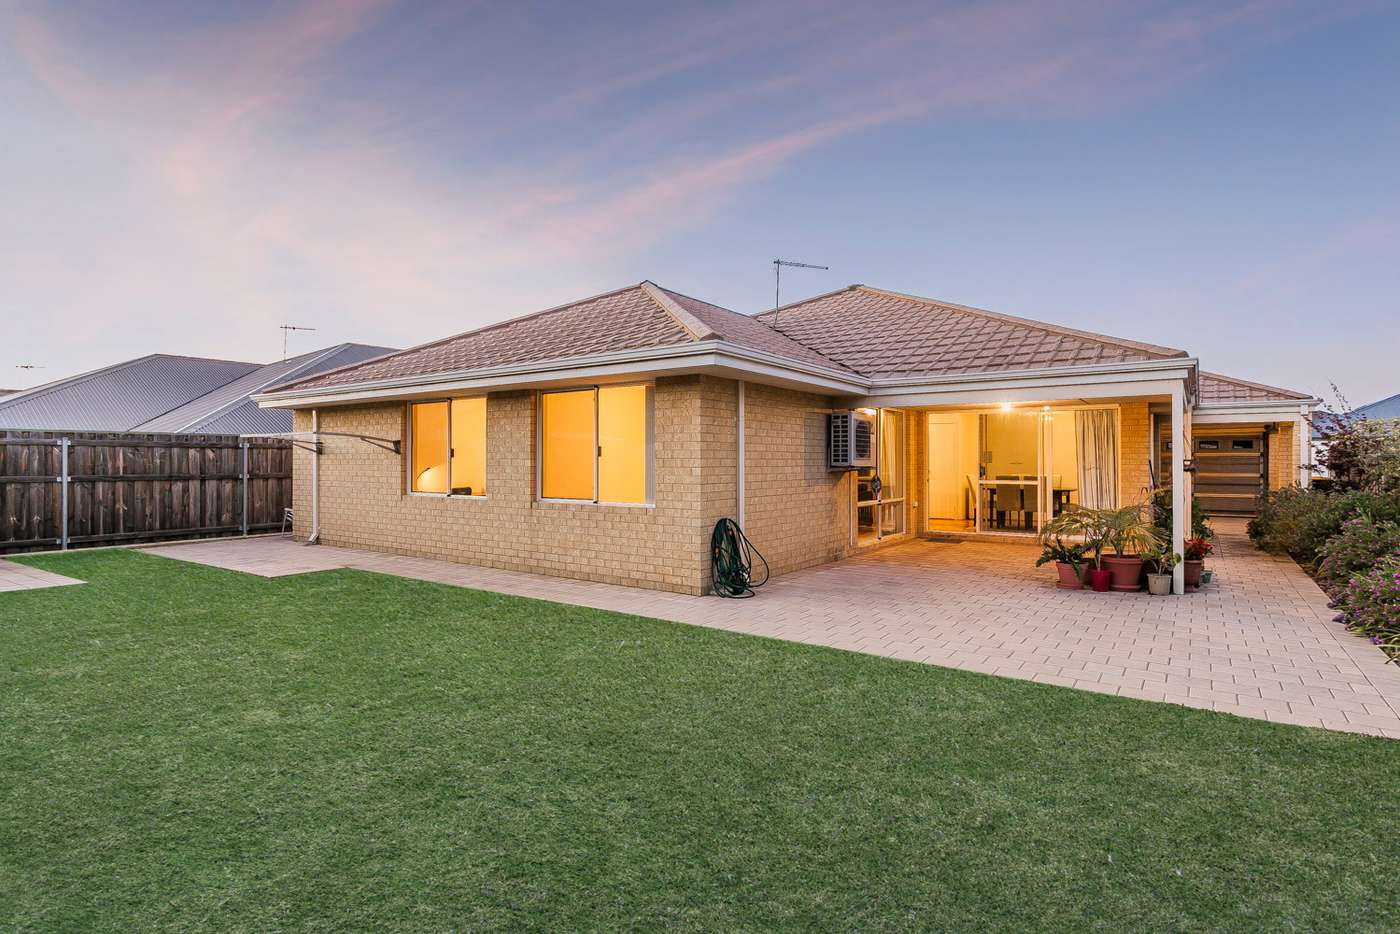 Main view of Homely house listing, 12 Sunstone Drive, Wellard WA 6170